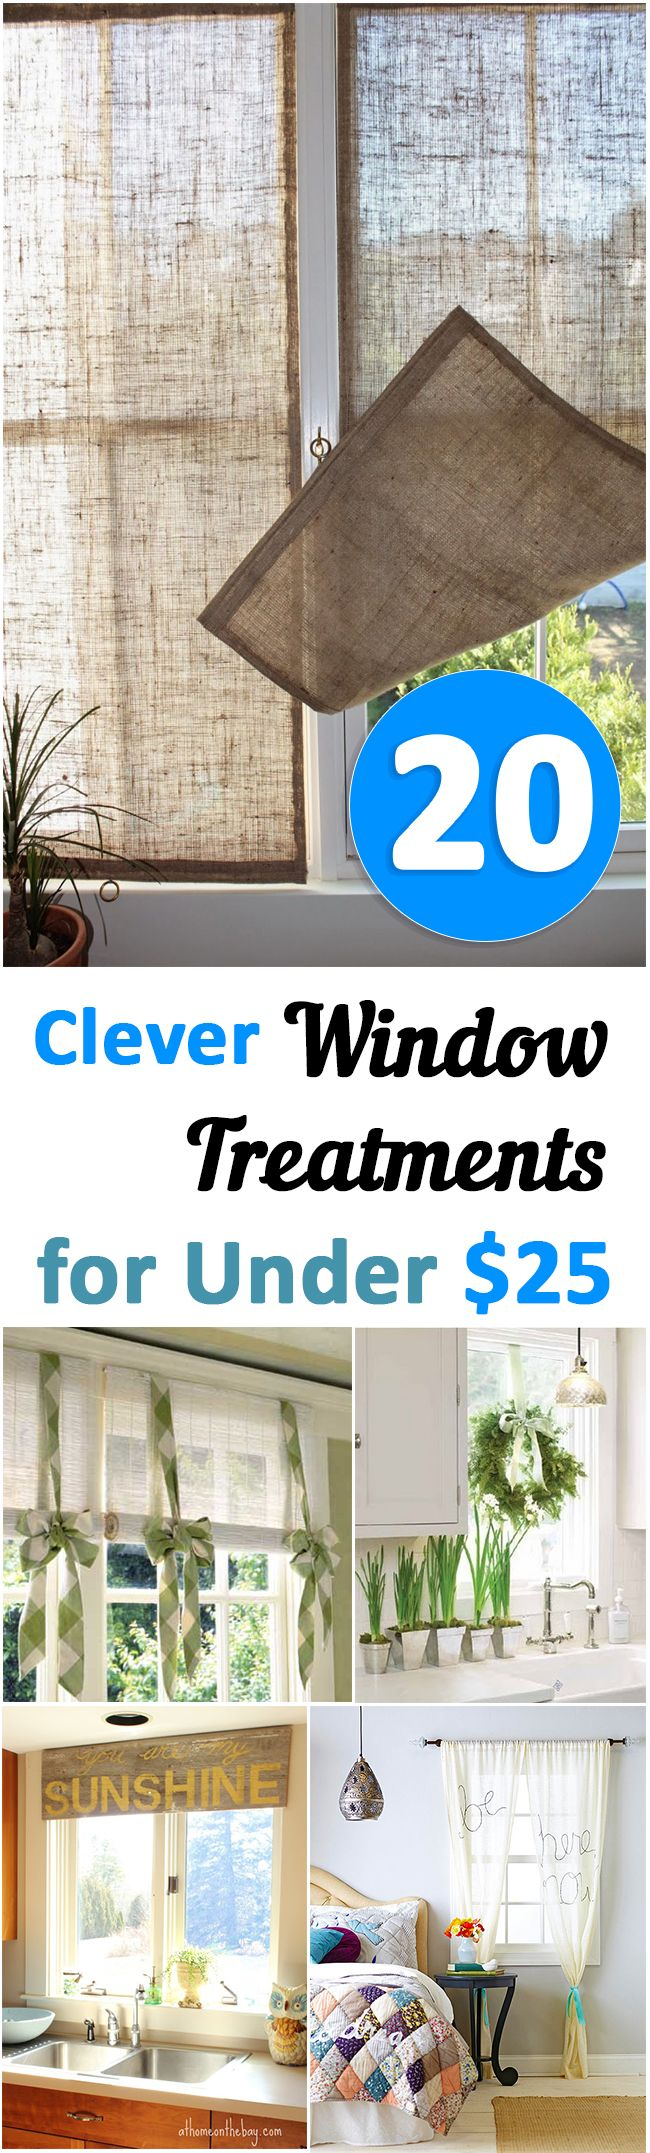 Decor Hacks 20 Clever Window Treatments For Under 25 Great Ideas Projects And Tutorials